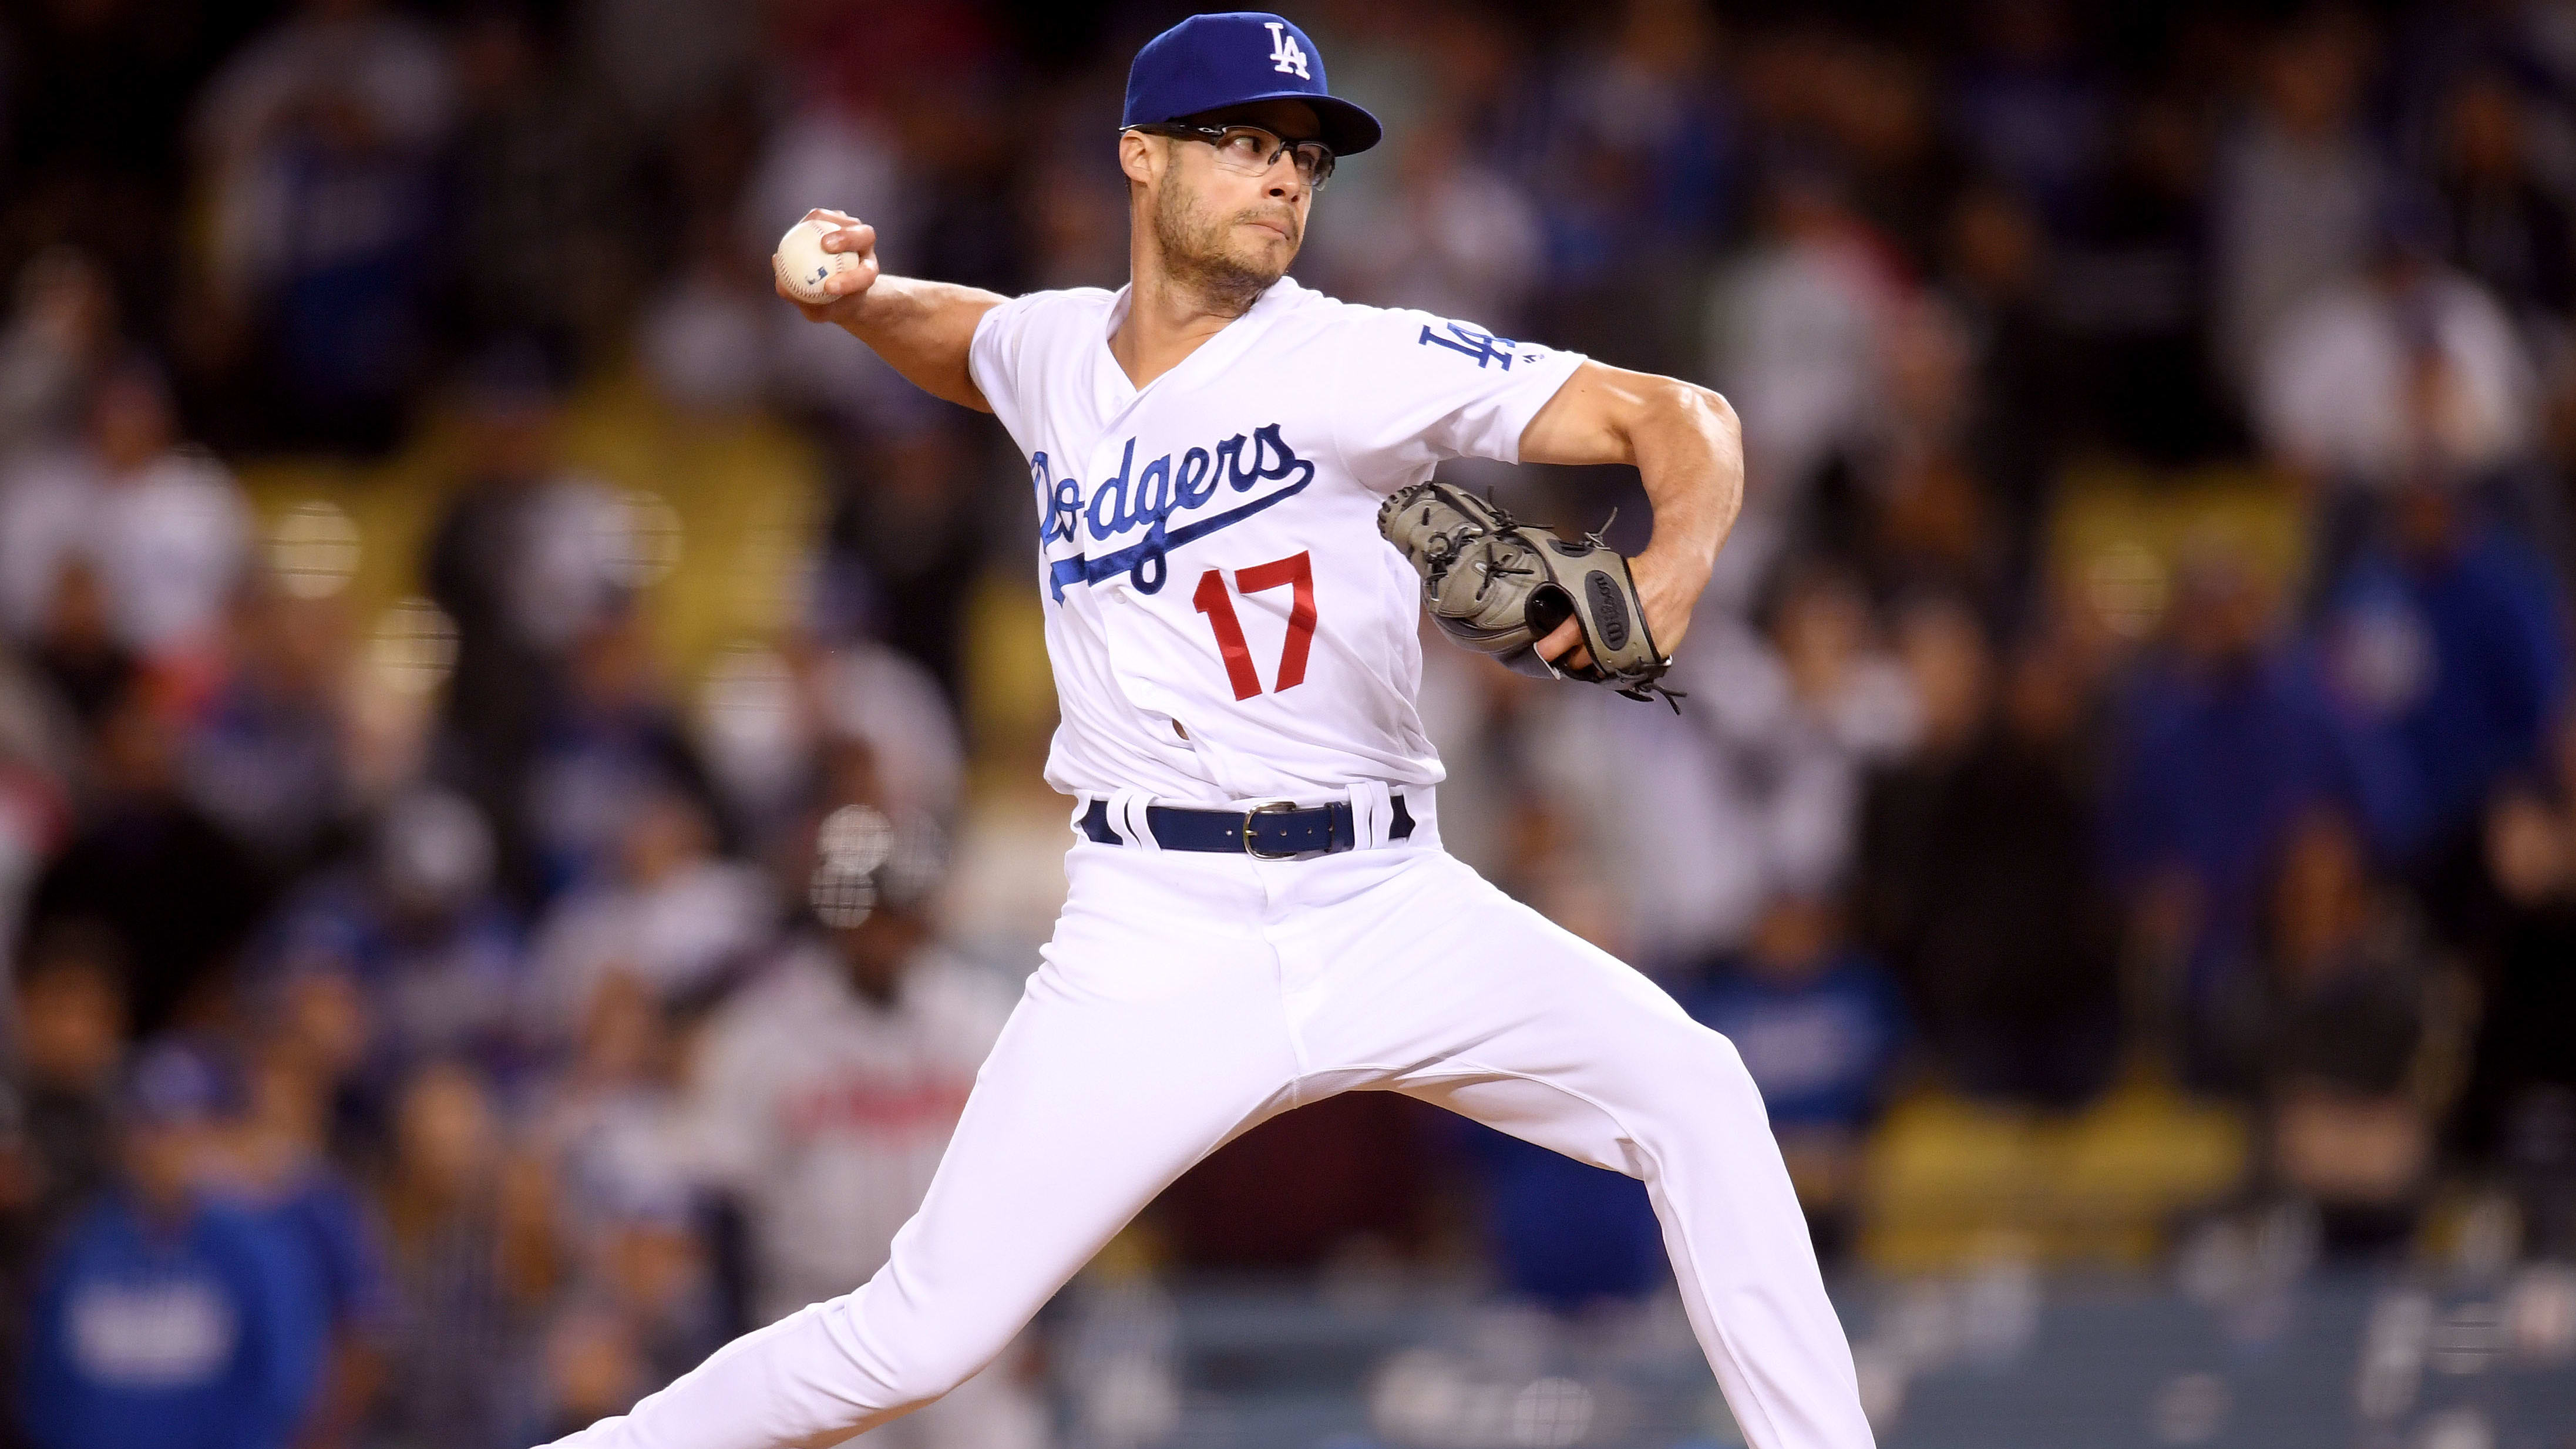 LOS ANGELES, CALIFORNIA - MAY 08:  Joe Kelly #17 of the Los Angeles Dodgers pitches in relief during the ninth inning against the Atlanta Braves at Dodger Stadium on May 08, 2019 in Los Angeles, California. (Photo by Harry How/Getty Images)